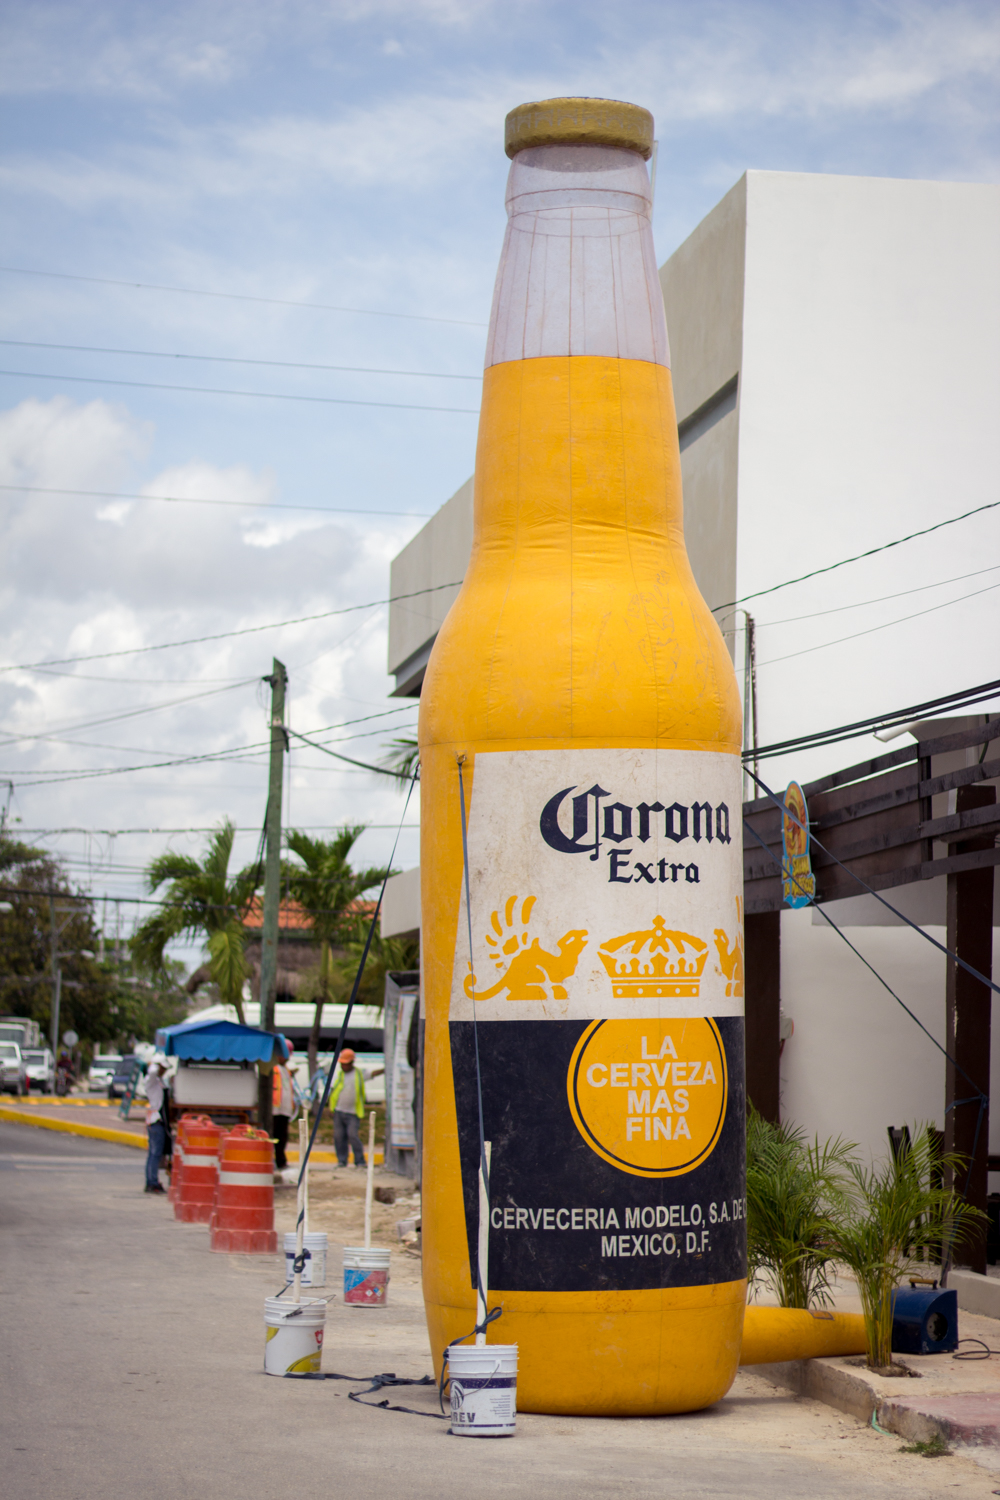 Corona on the street in Tulum, Mexico